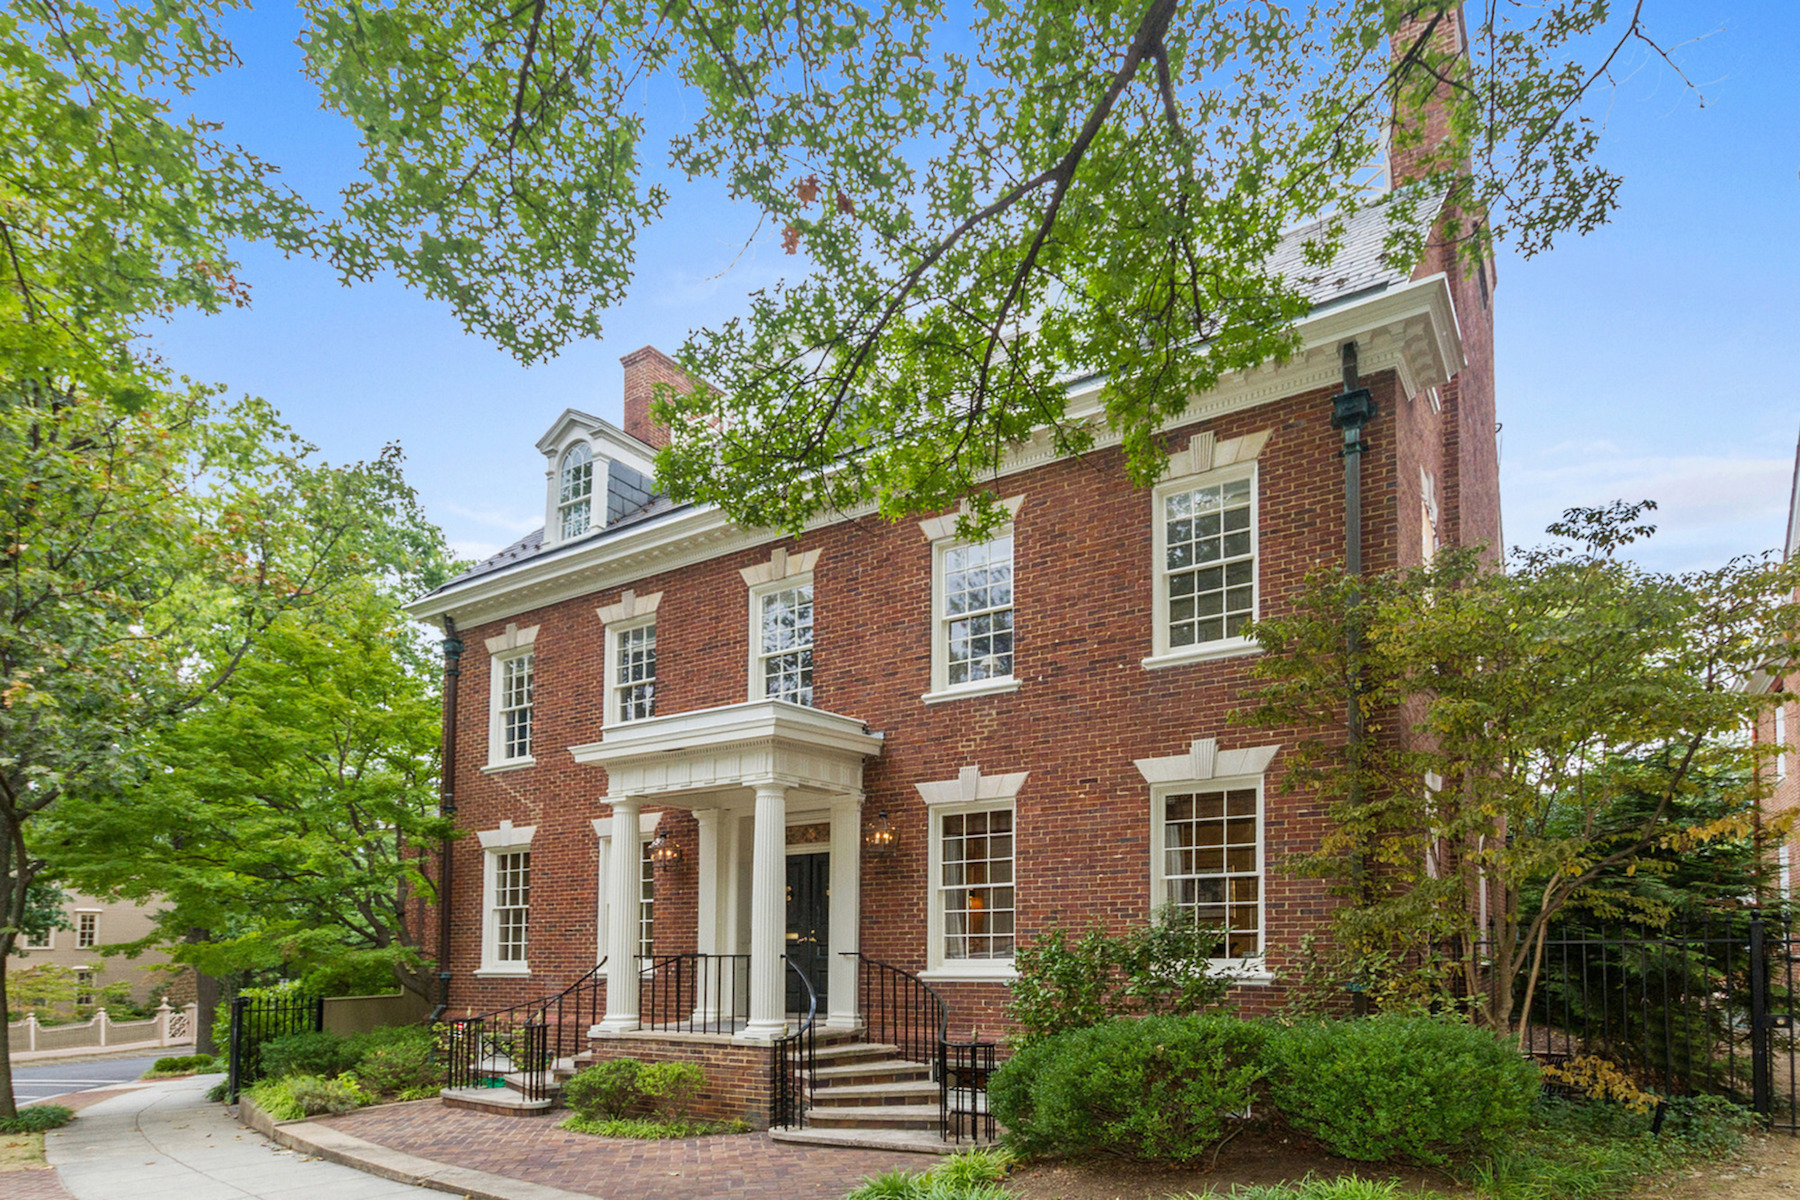 Single Family Home for Sale at Kalorama 6 Kalorama Circle Nw Washington, District Of Columbia, 20008 United States